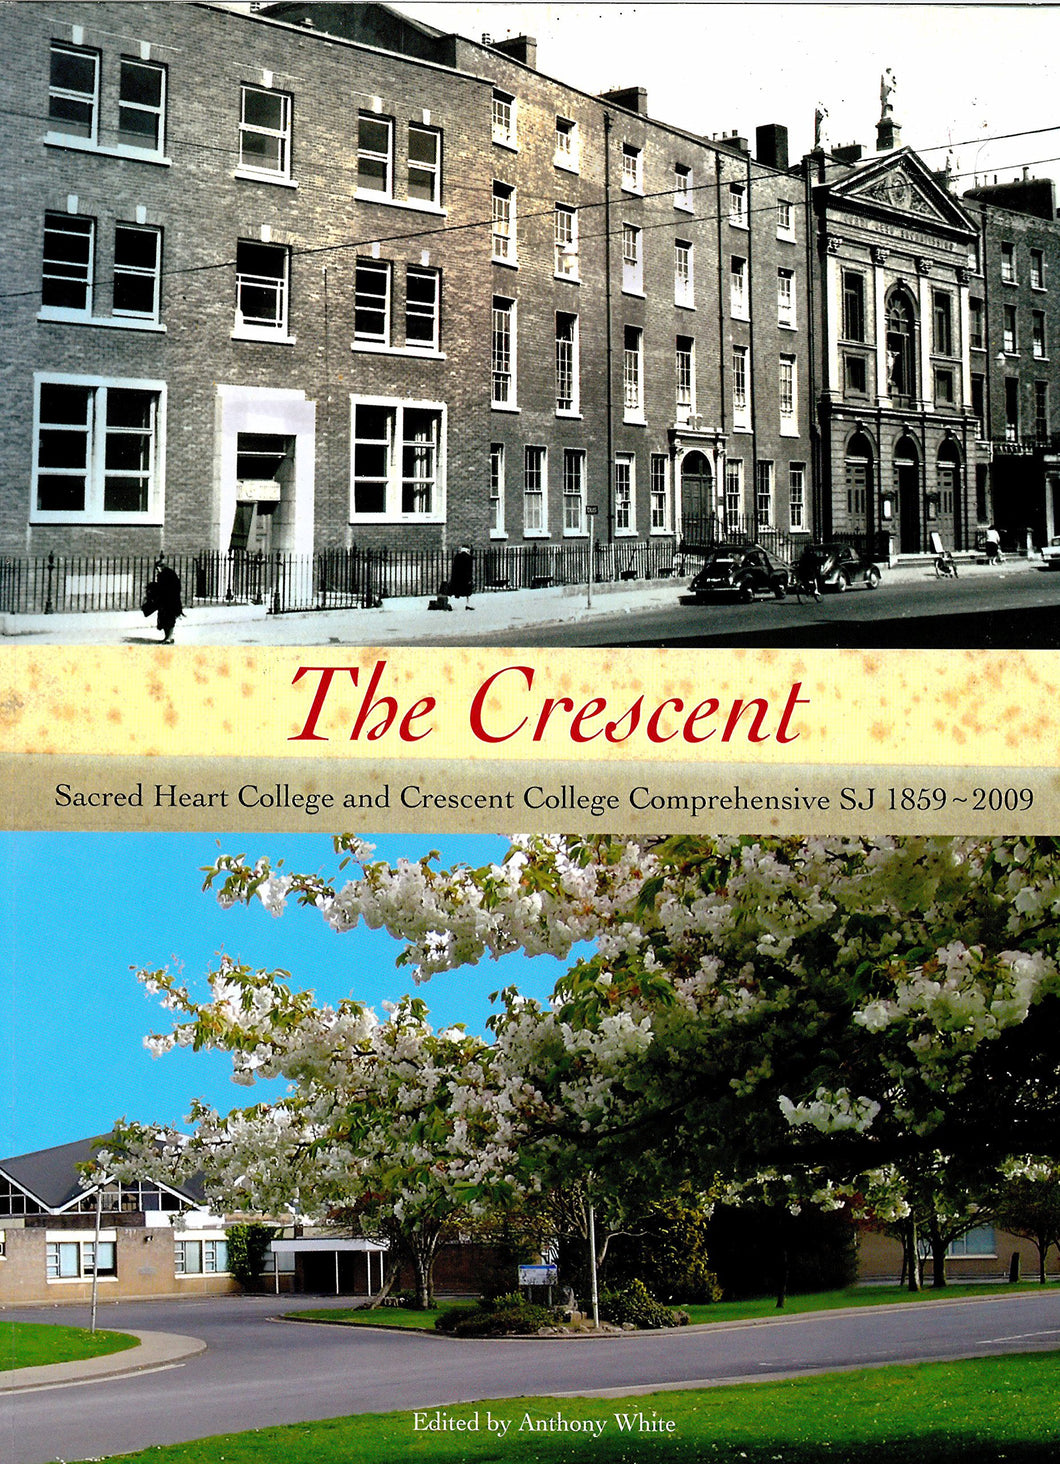 The Crescent: Sacred Heart College and Crescent College Comprehensive SJ 1859-2009